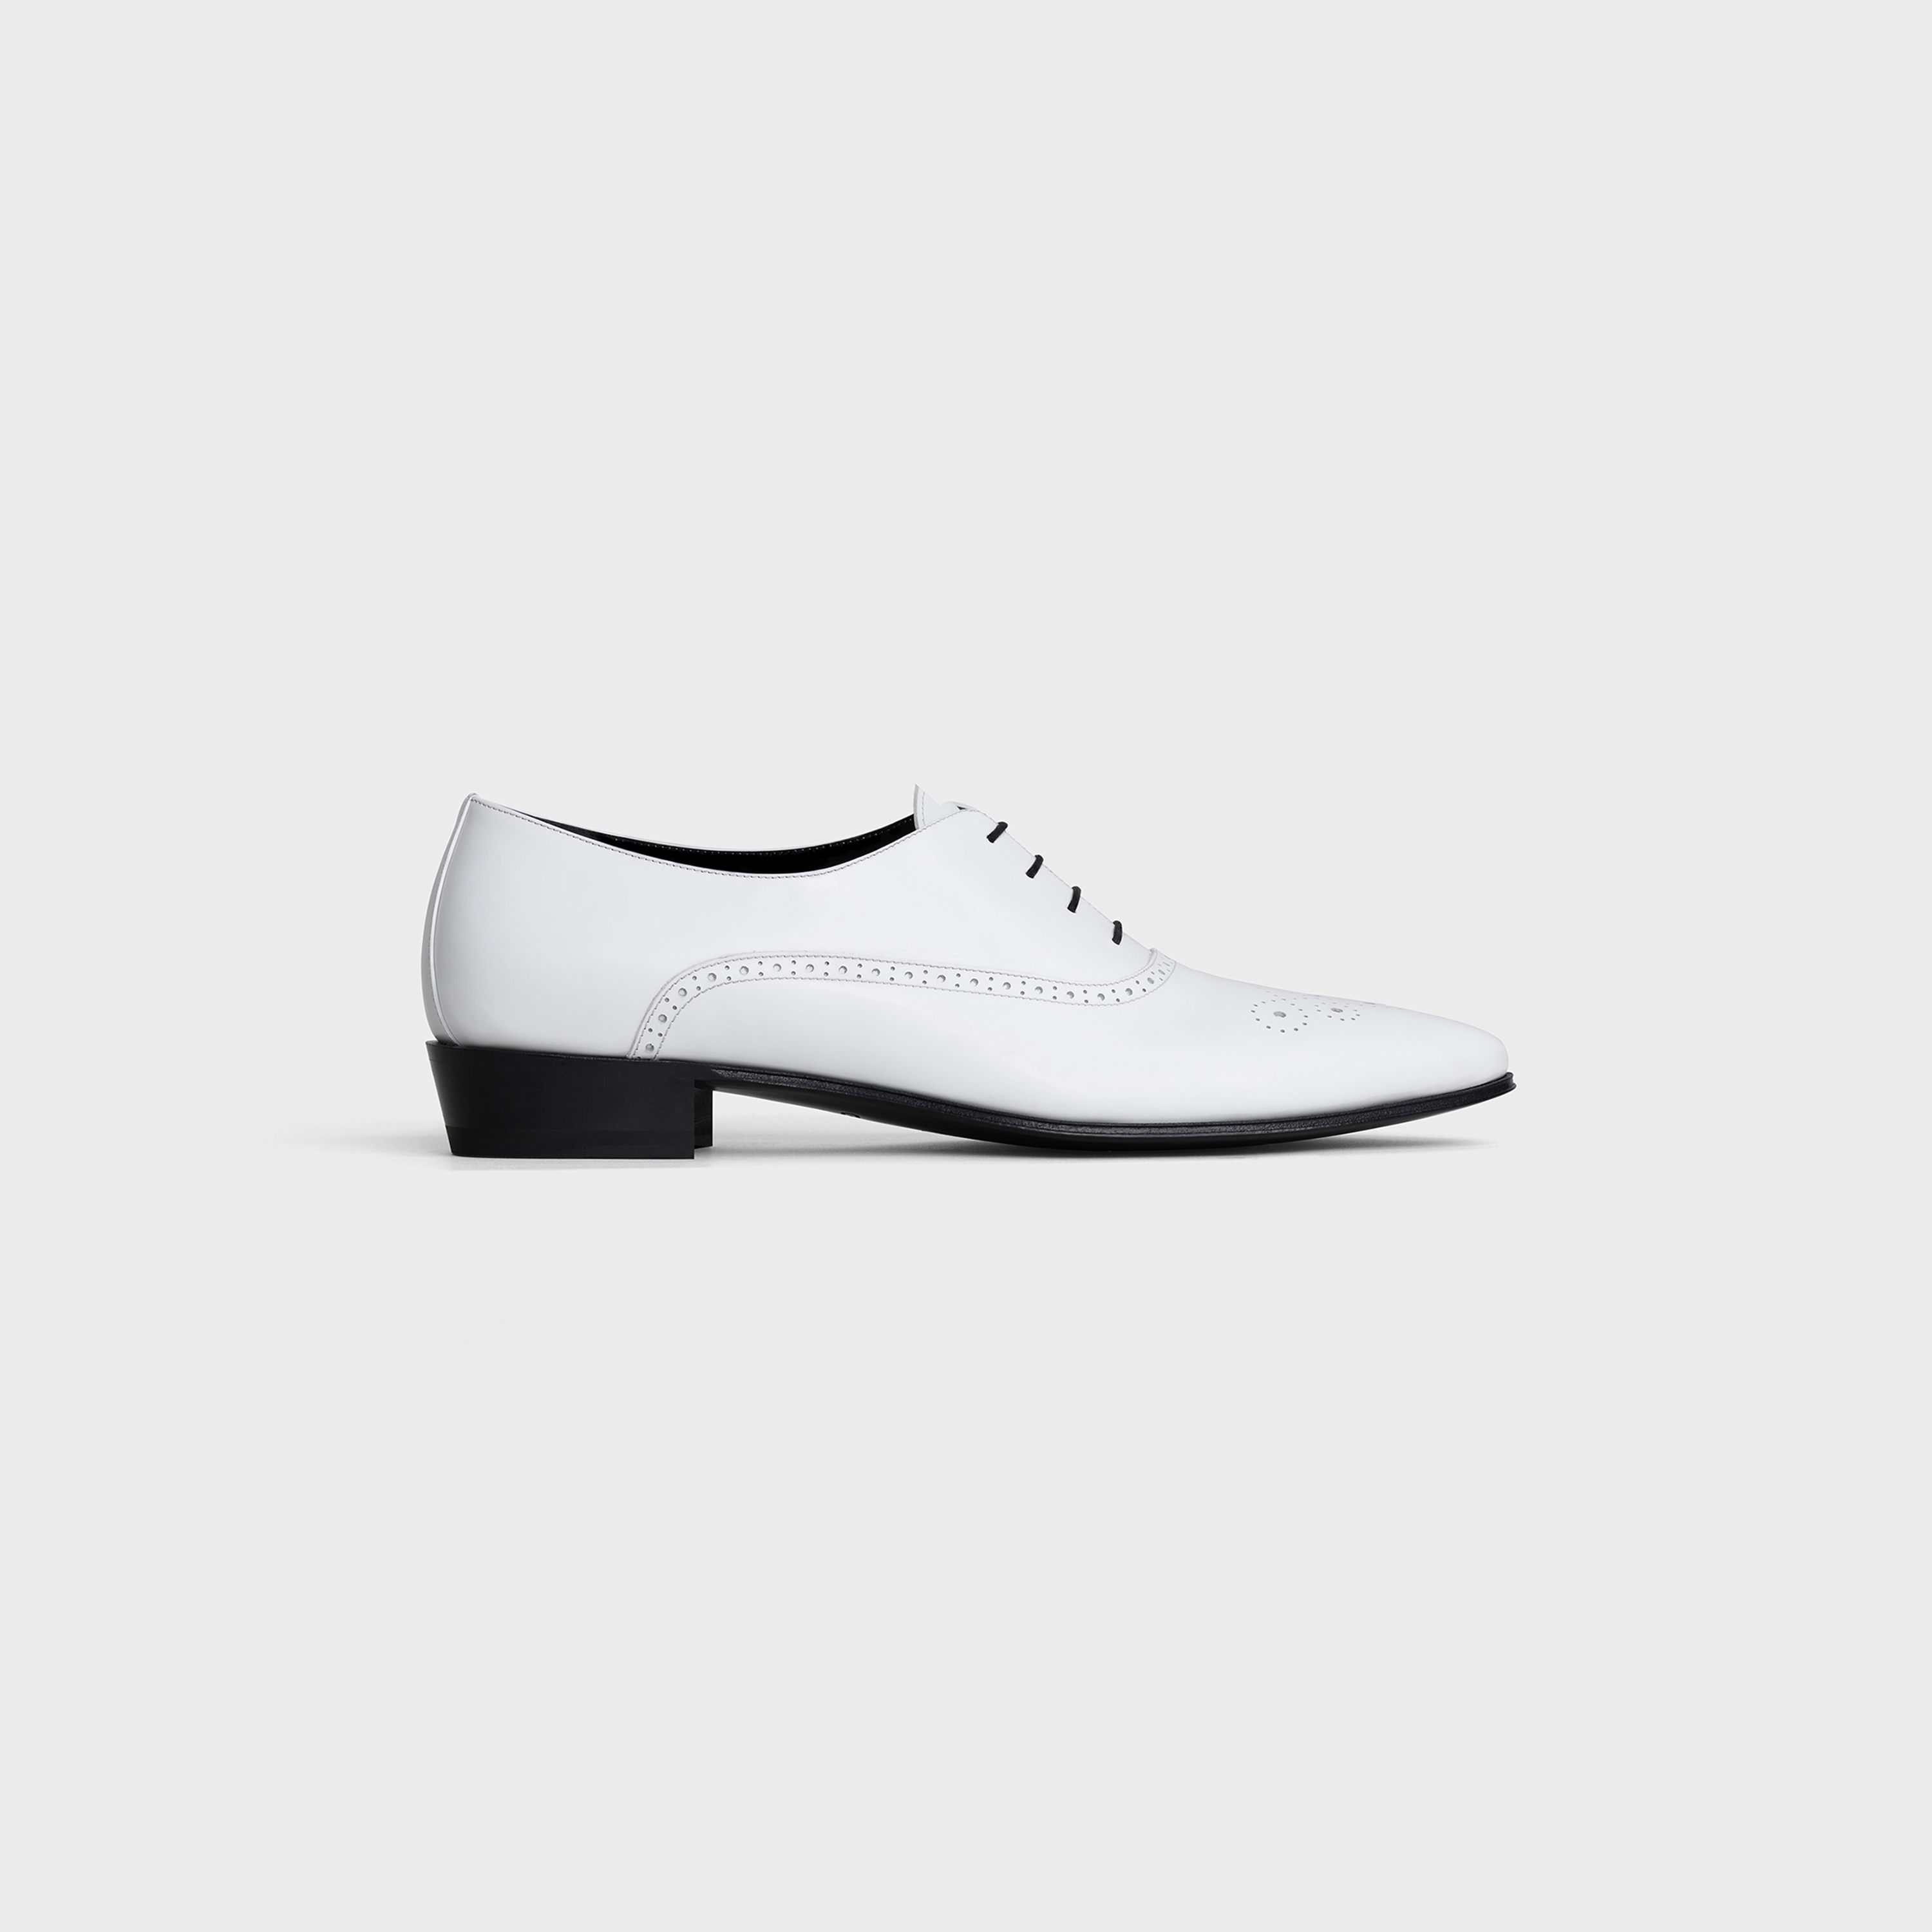 CELINE JACNO Oxford in Shiny calfskin | CELINE